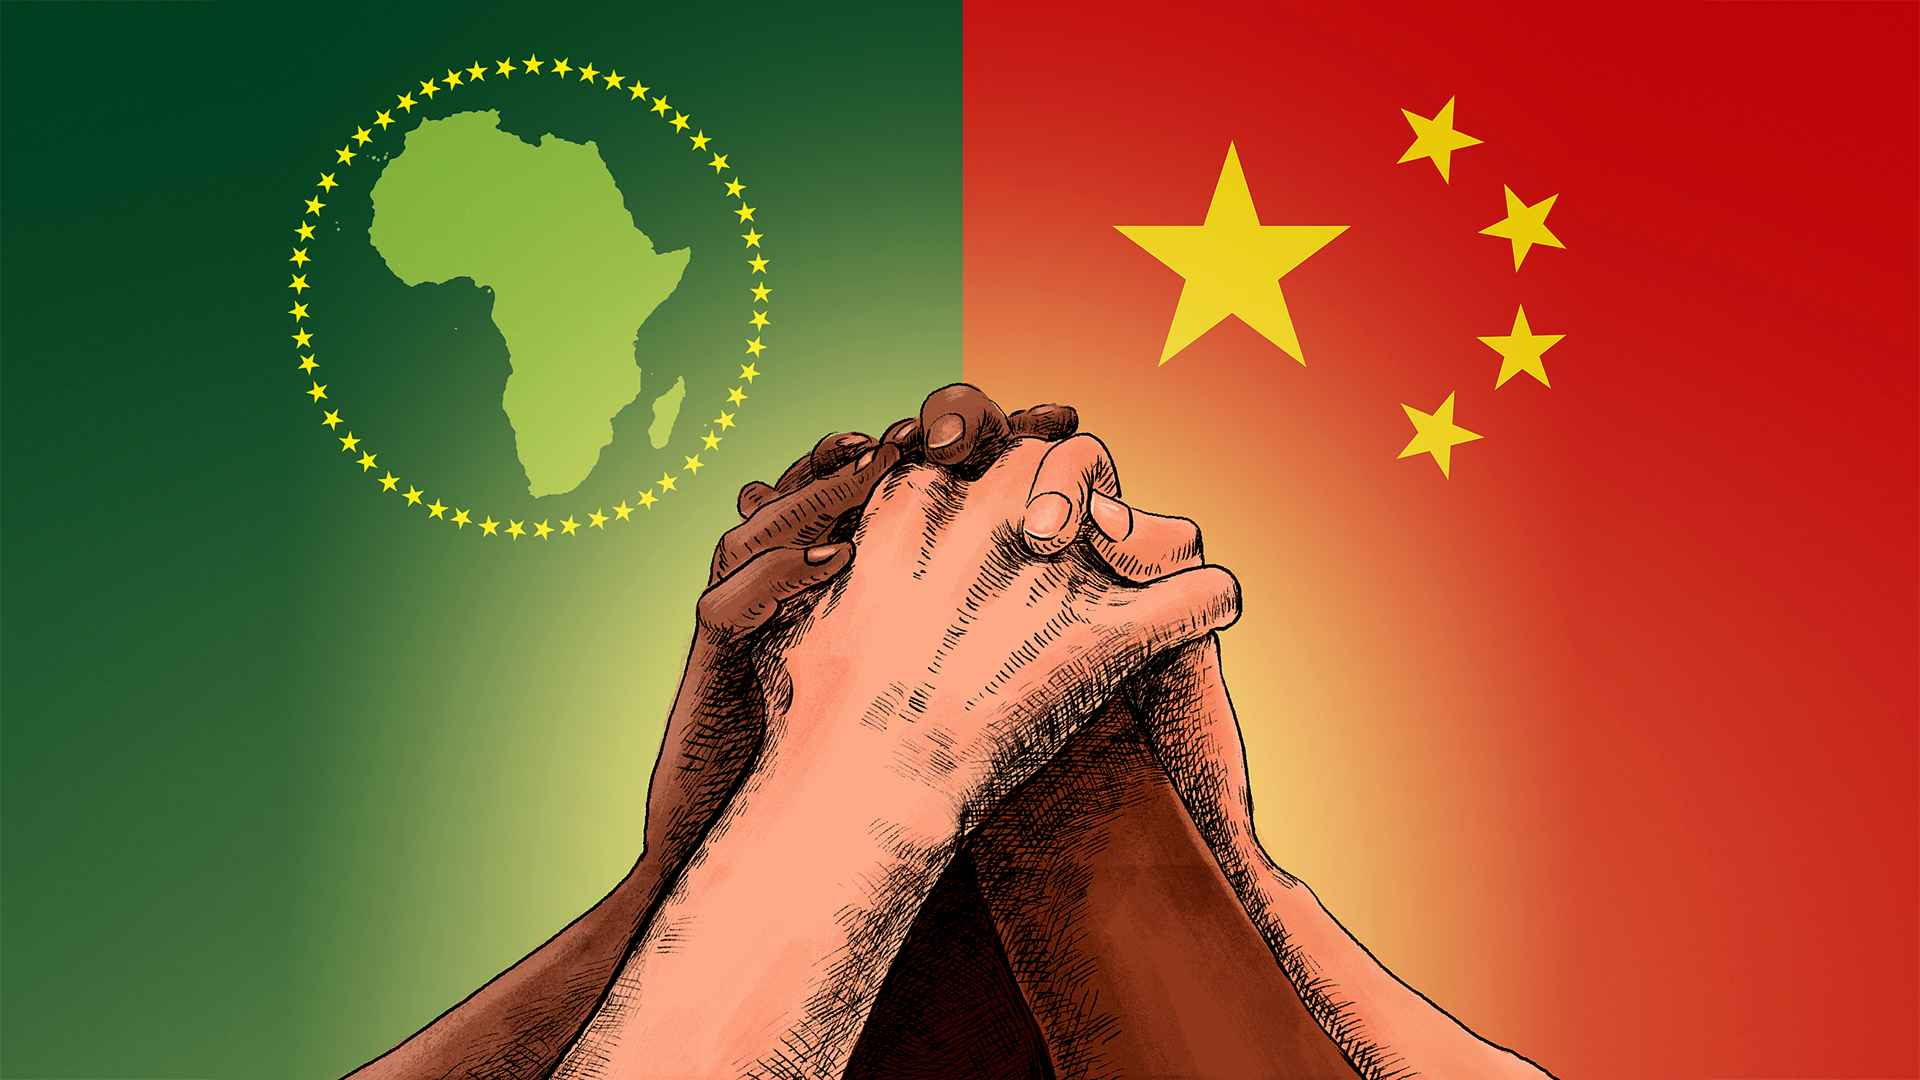 Opinion: FOCAC and BRI bring reciprocal benefit for China and Africa